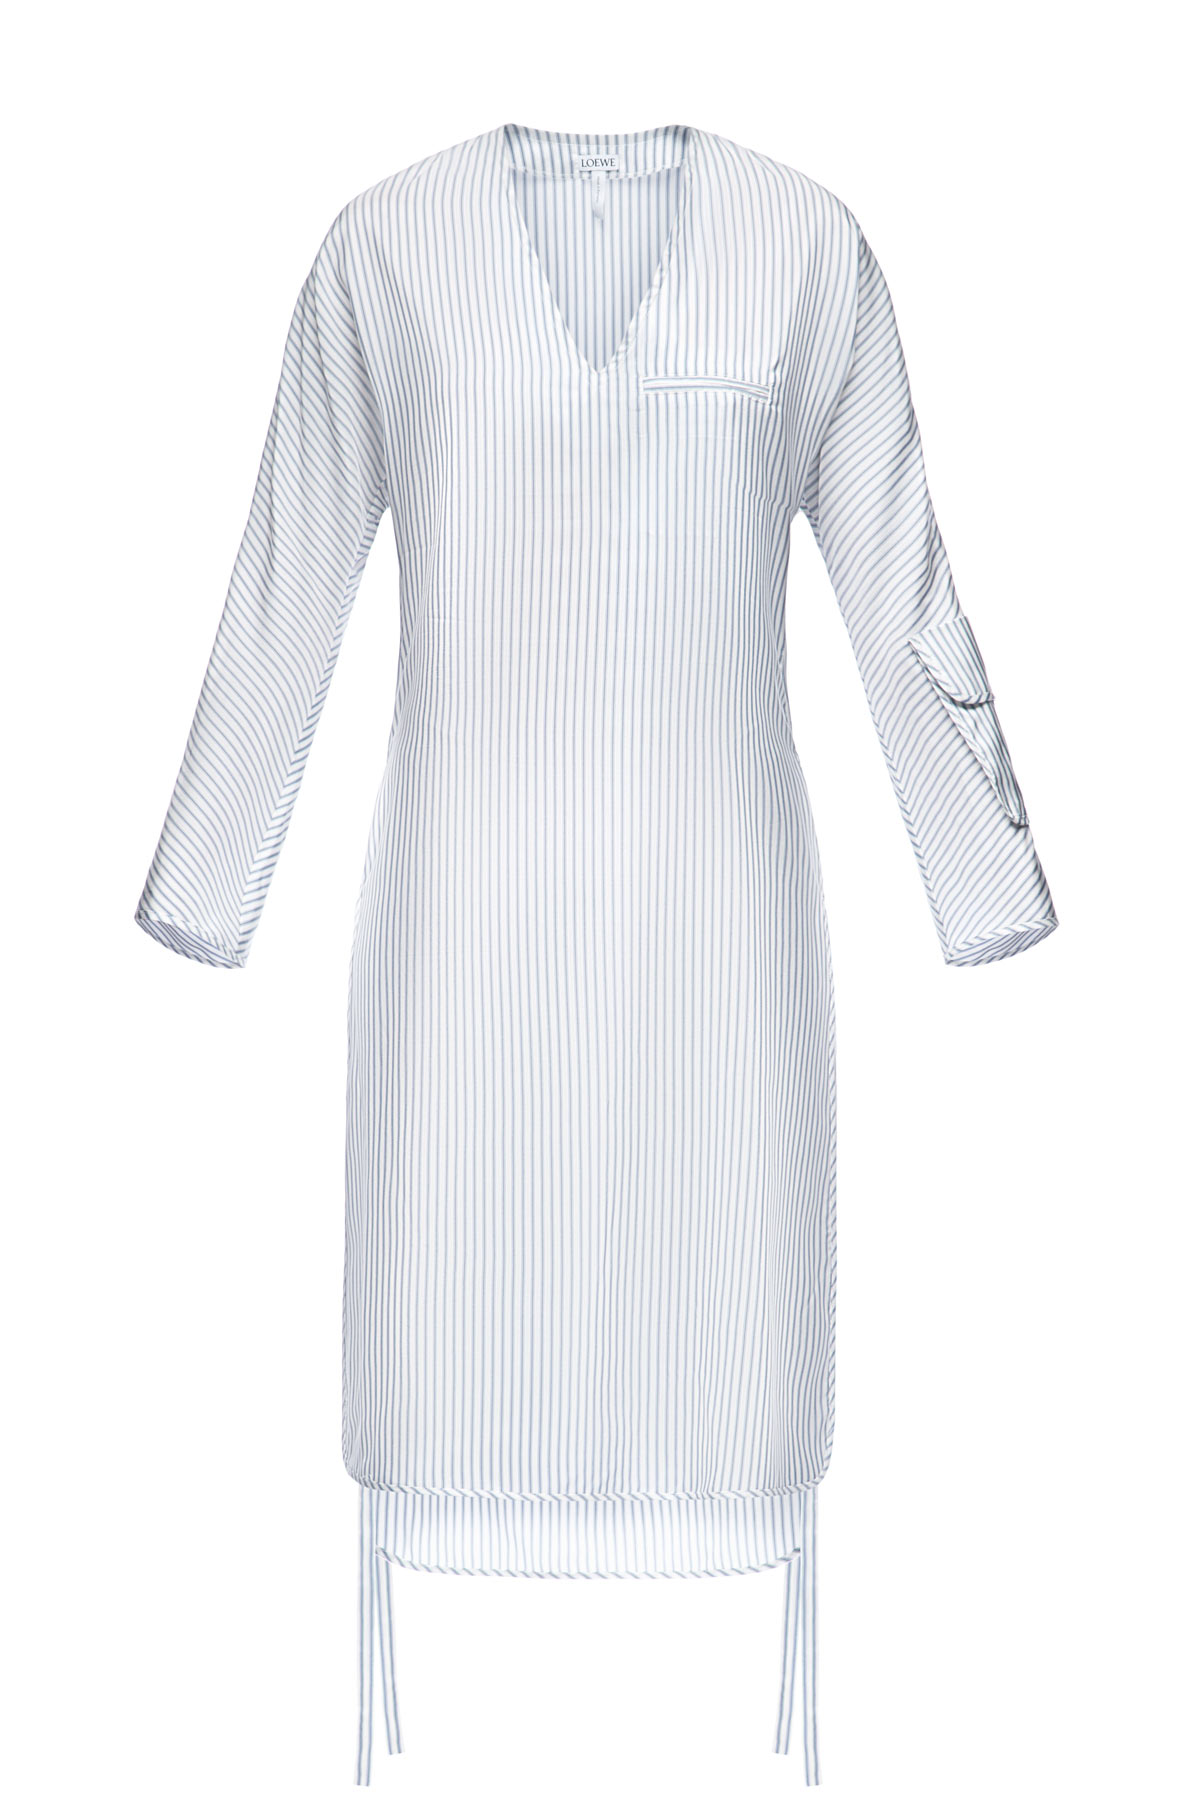 LOEWE Stripe Tunic Dress Blue/White front